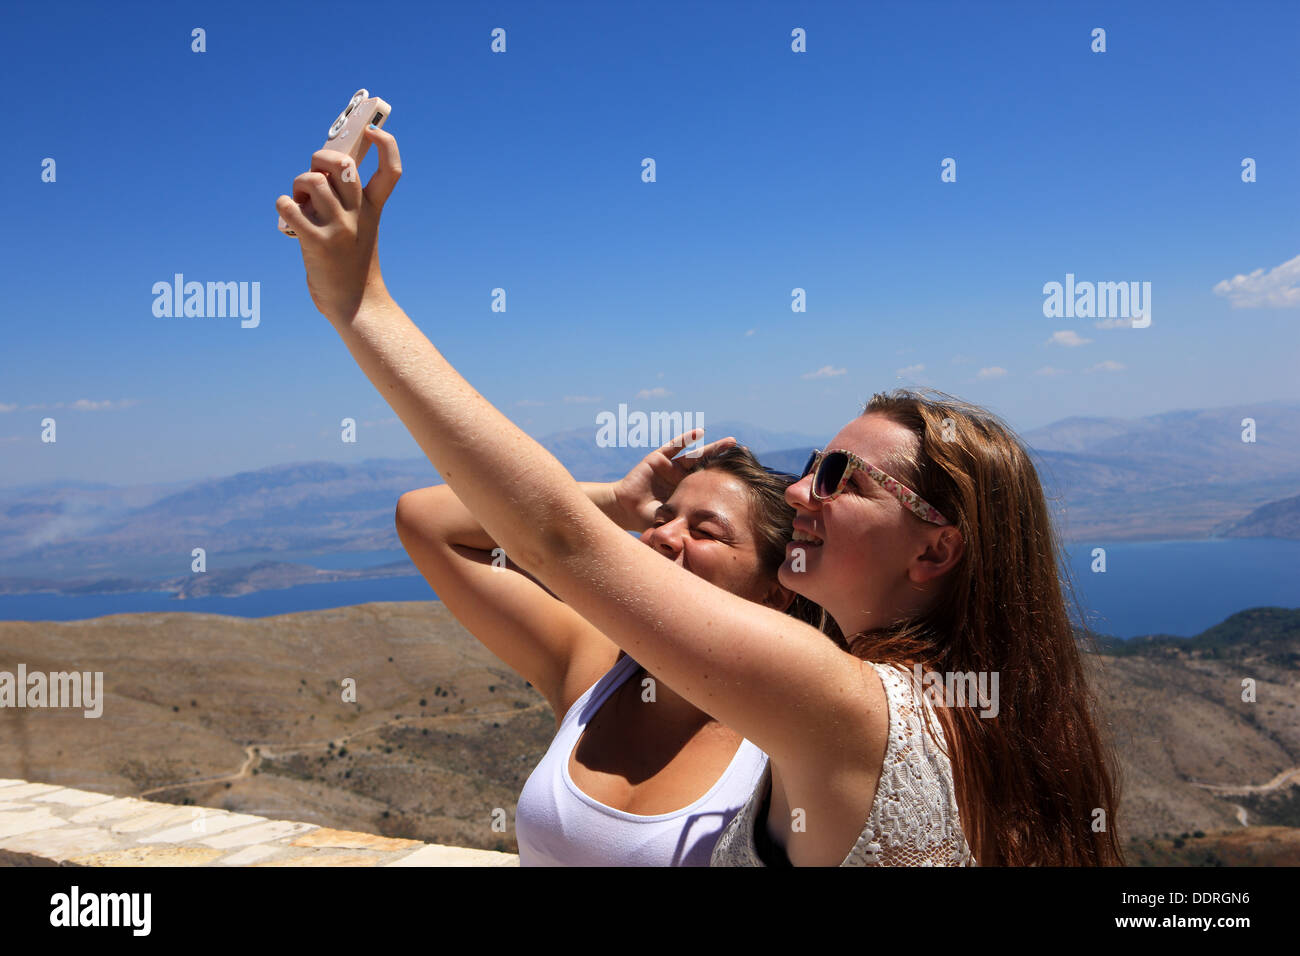 Girls on holiday taking a selfie, self-portrait photograph, the word made the Oxford Dictionaries online update in August 2013 - Stock Image